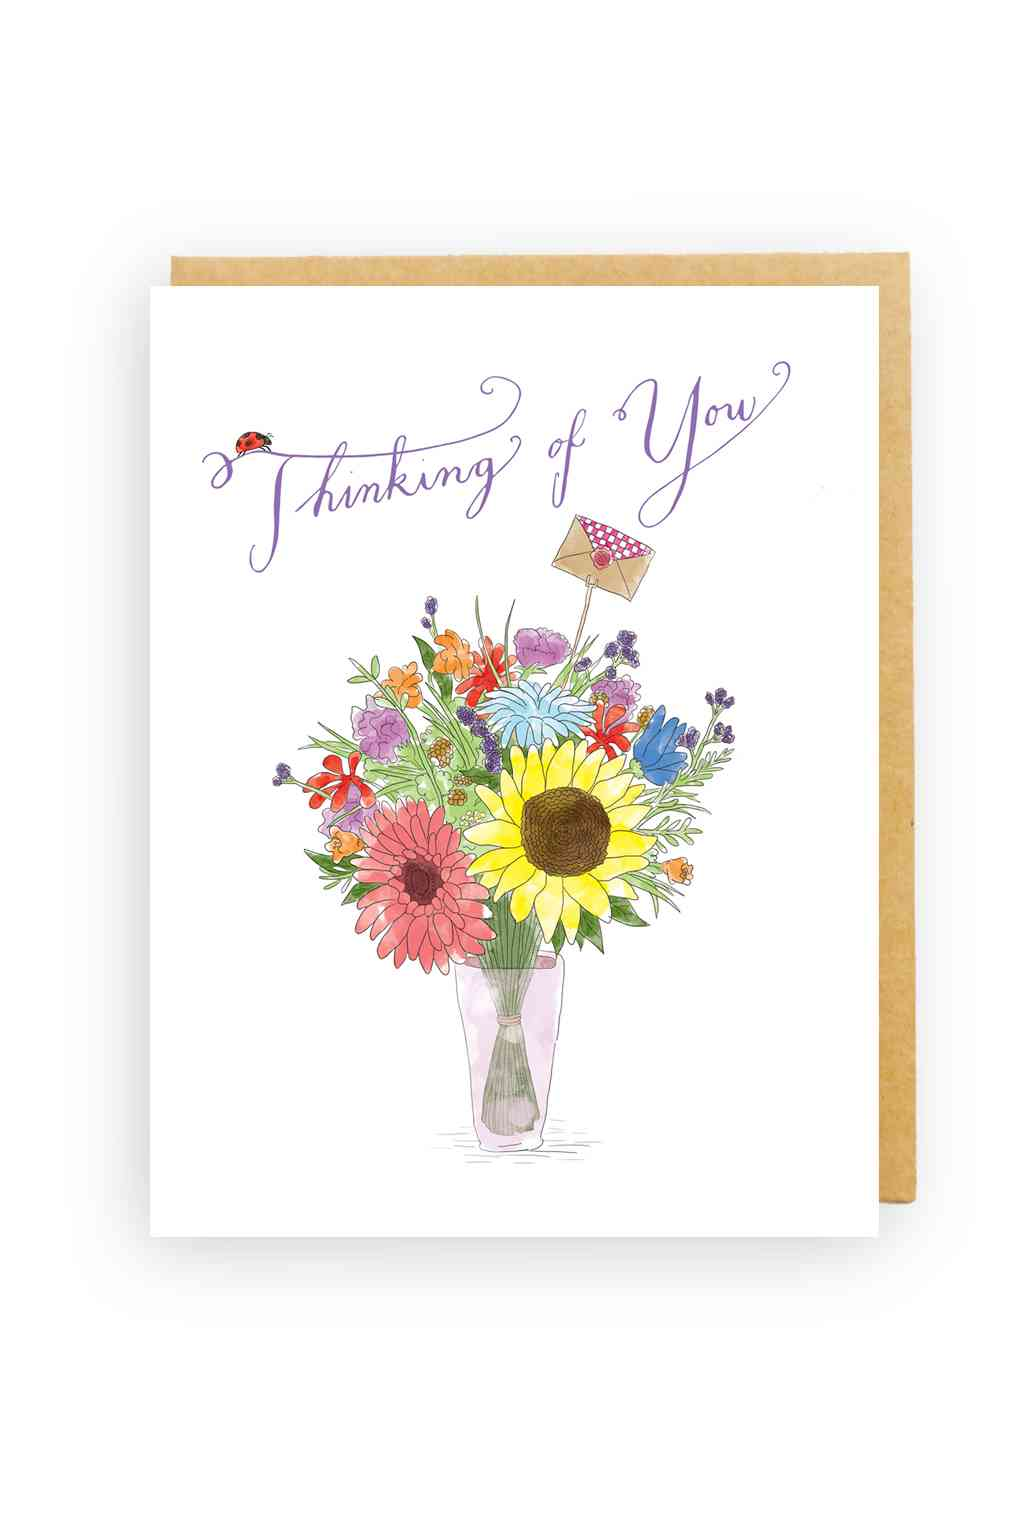 Squirrel Design Studio-Flowers In A Vase - Sympathy Card-Mott and Mulberry